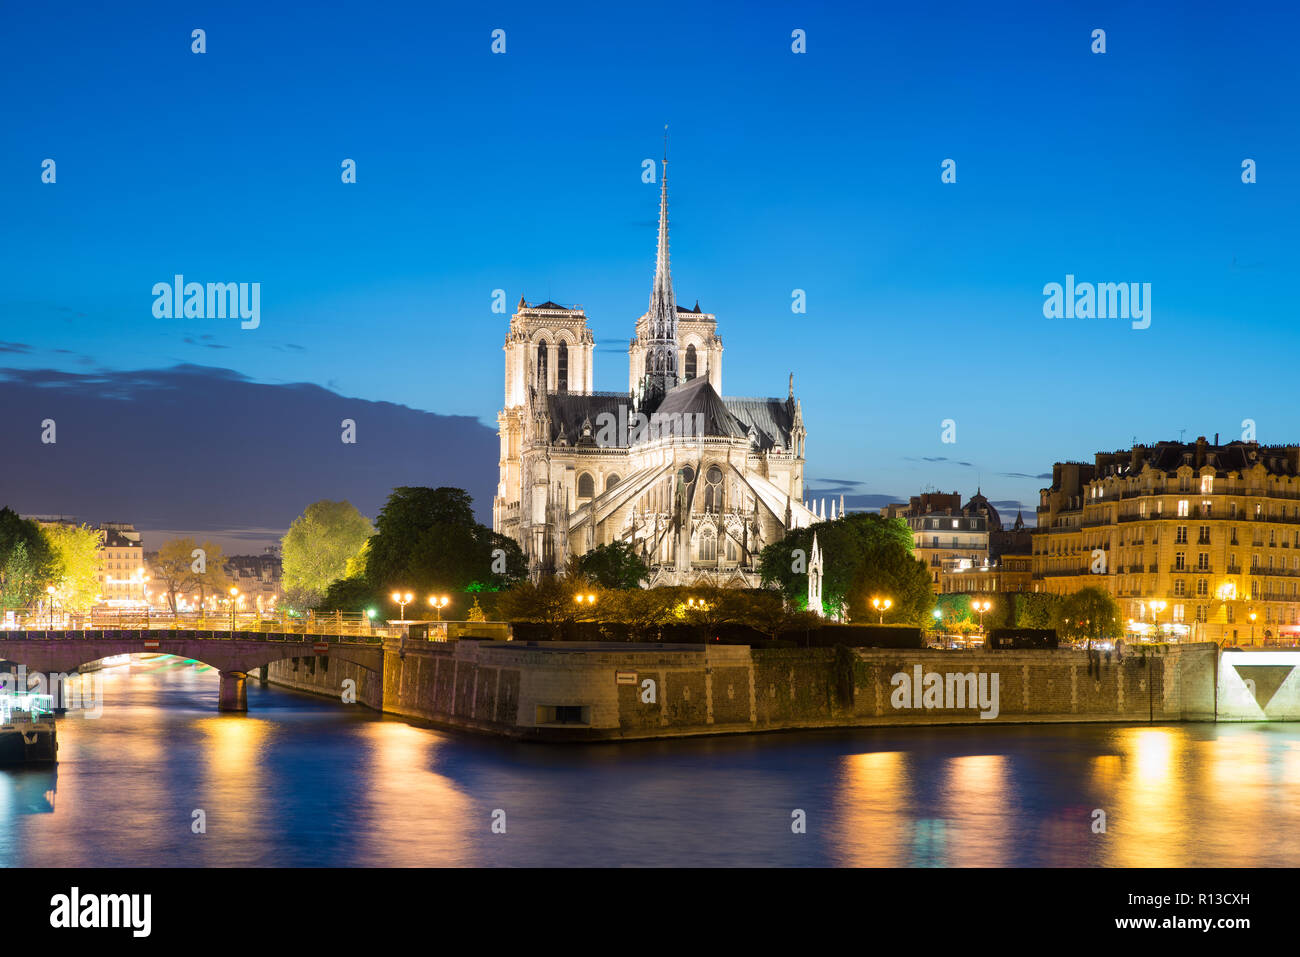 Notre Dame de Paris with cruise ship on Seine river at night in Paris, France - Stock Image